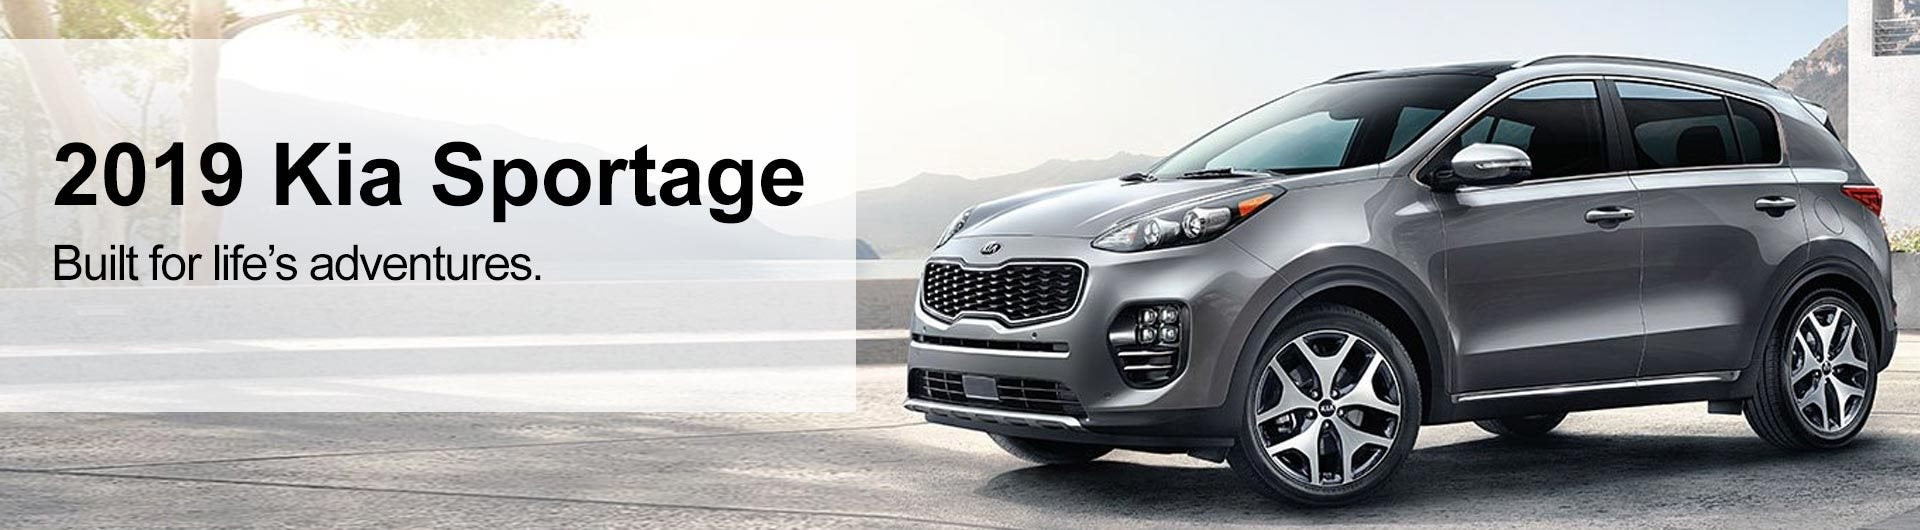 2019 Kia Sportage Dealer in Albany NY | Destination Kia